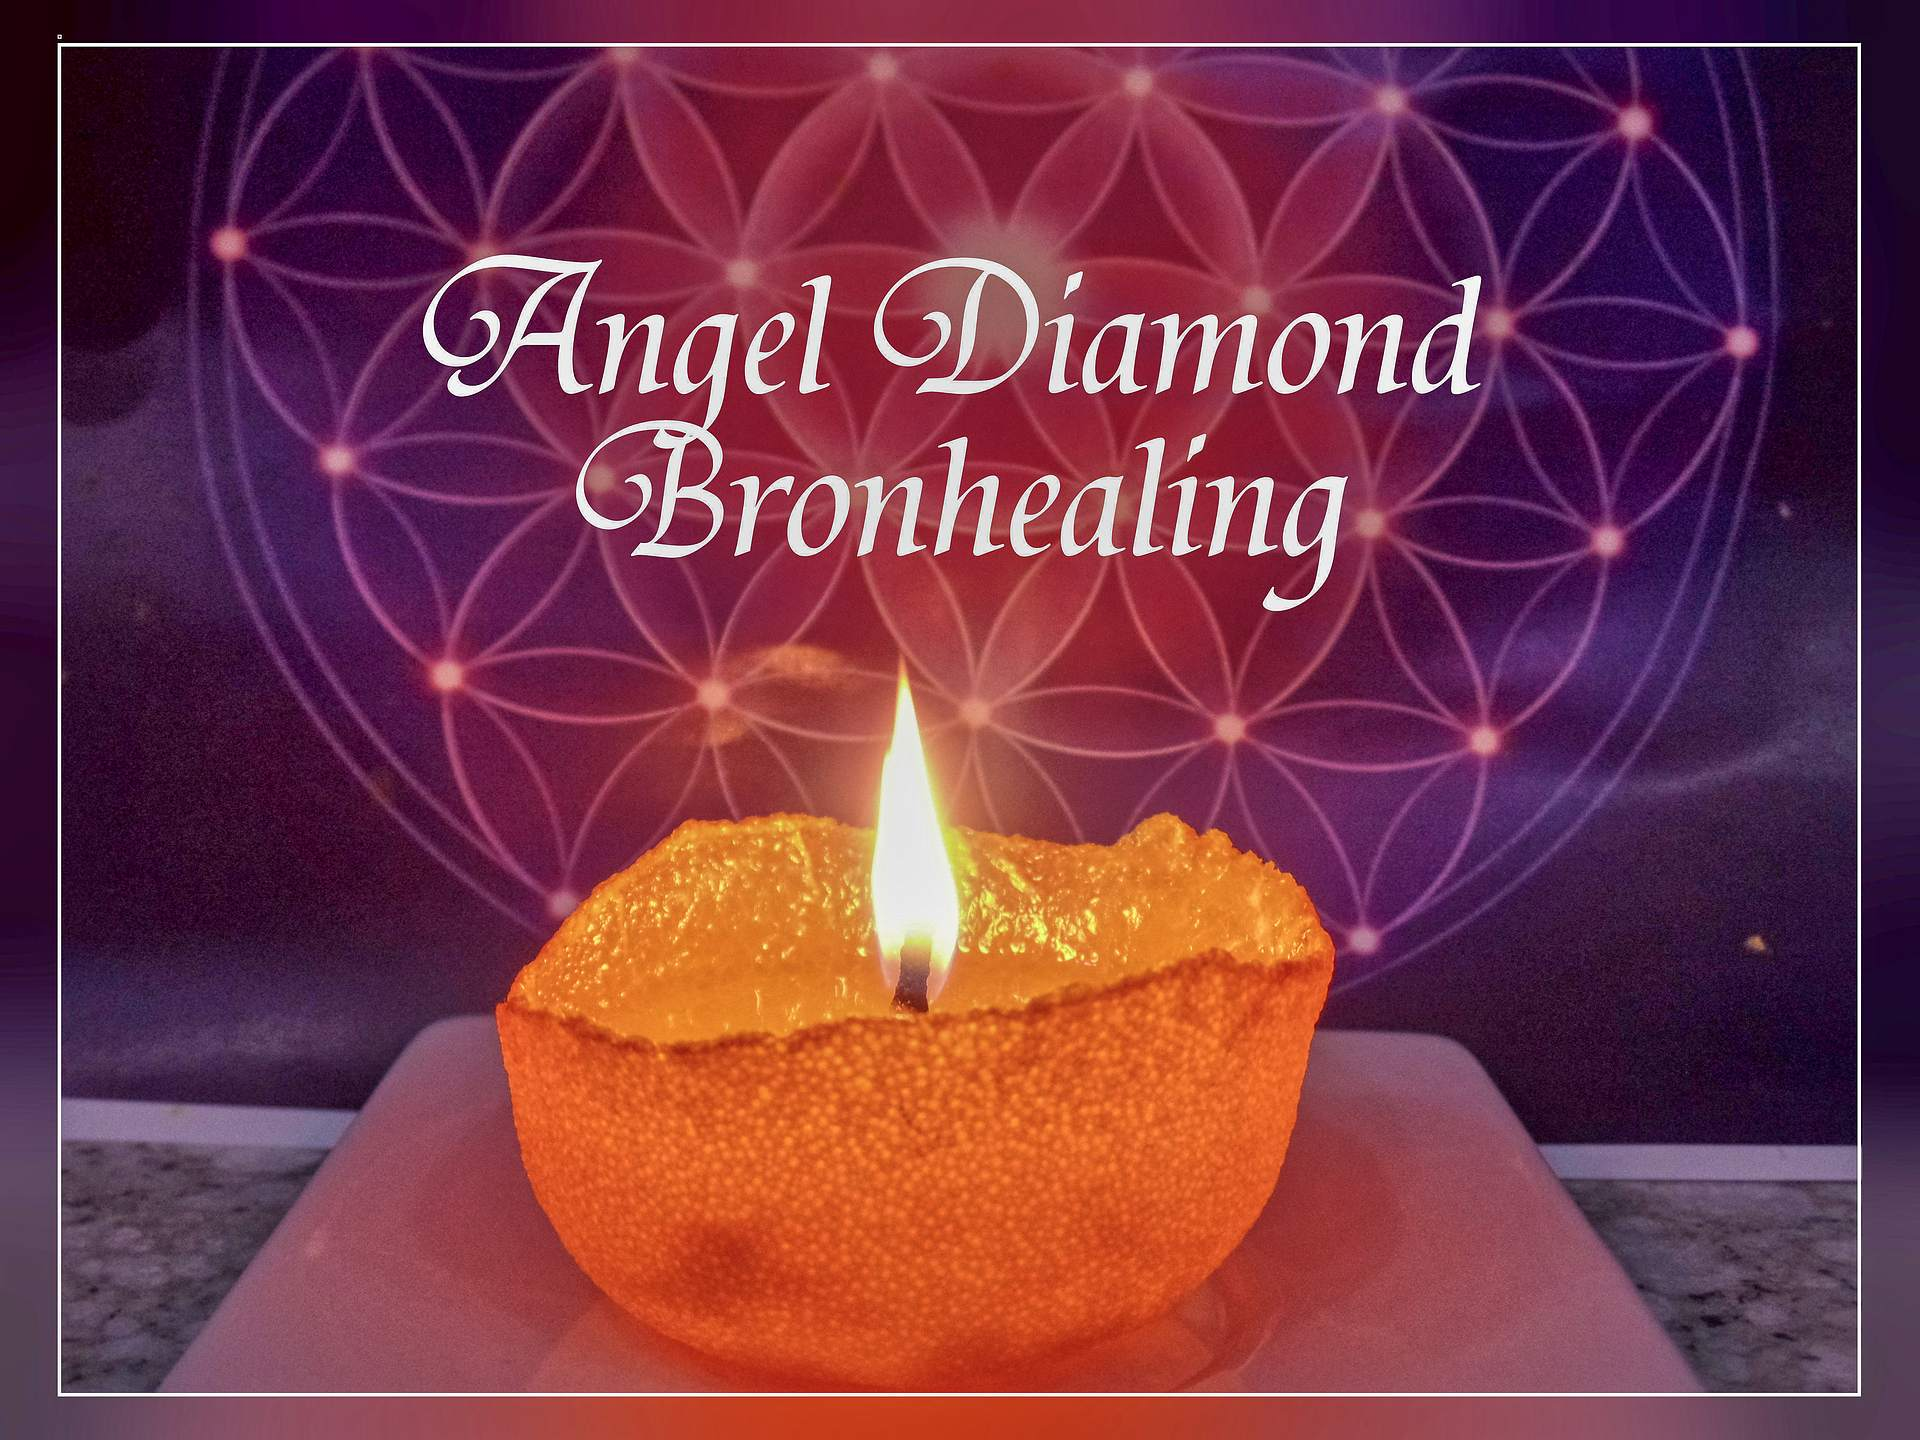 Angel Diamond Bronhealing